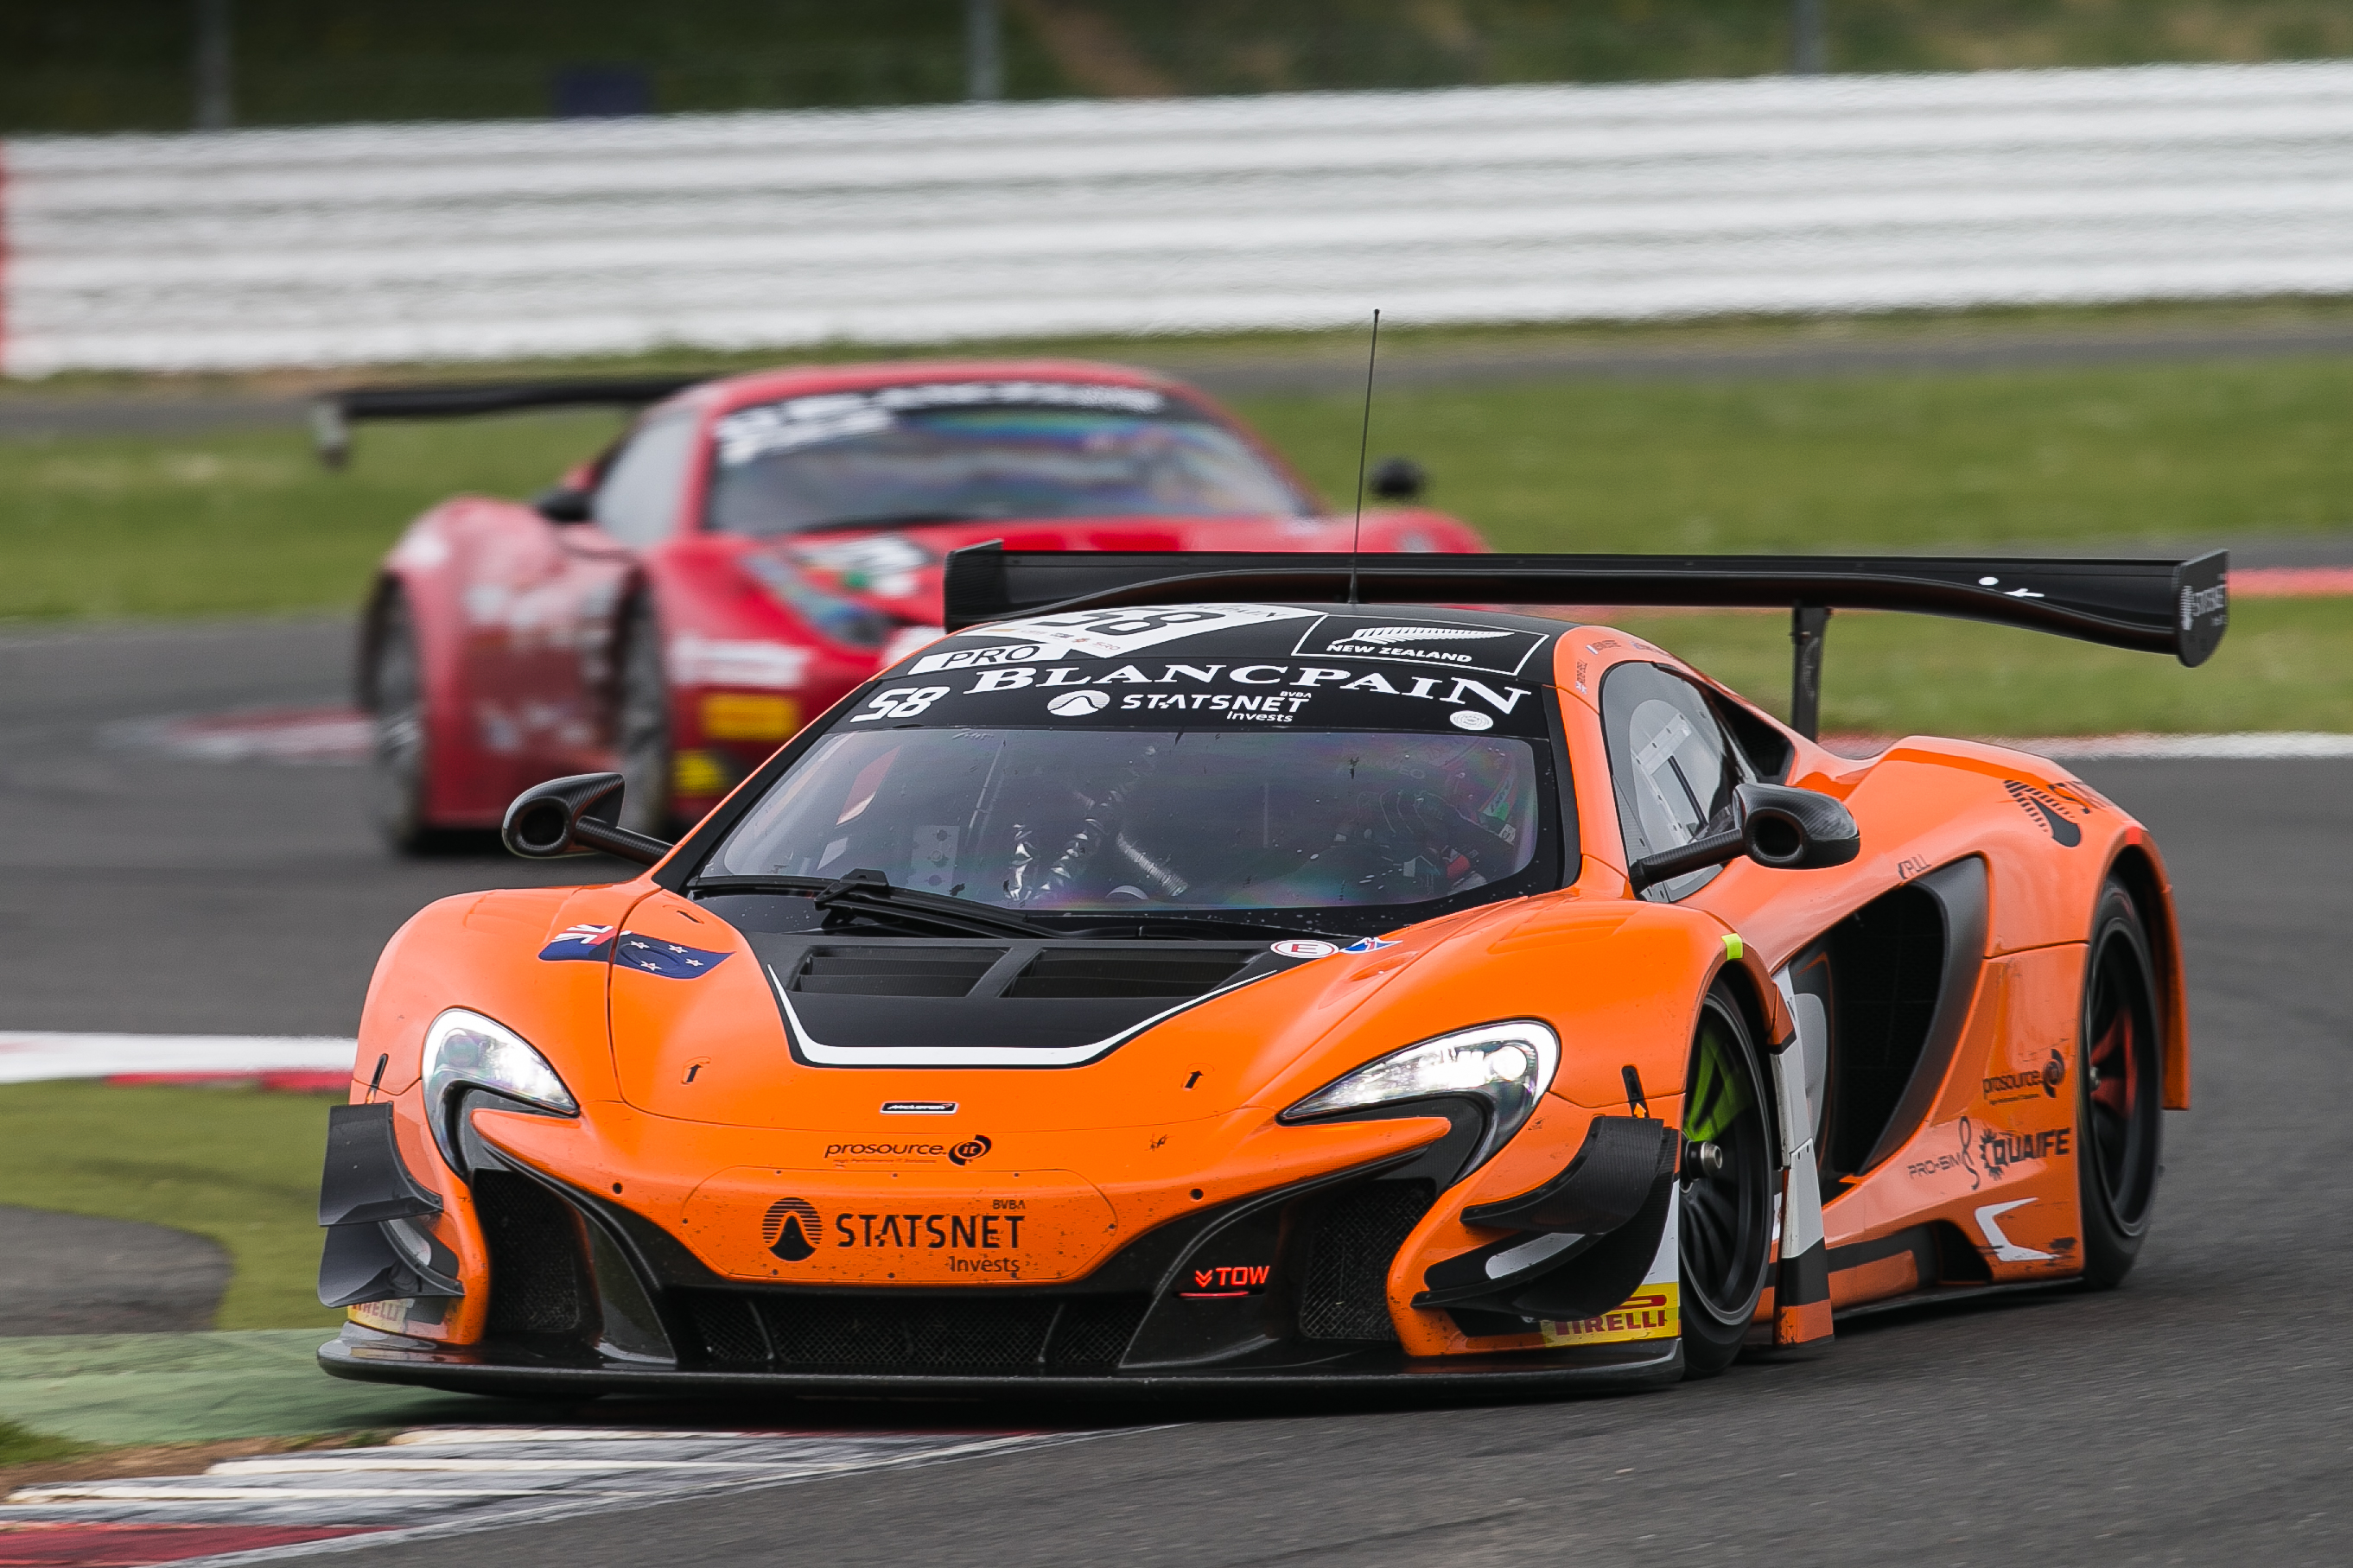 mclaren 650s gt3 claims maiden blancpain endurance series. Black Bedroom Furniture Sets. Home Design Ideas